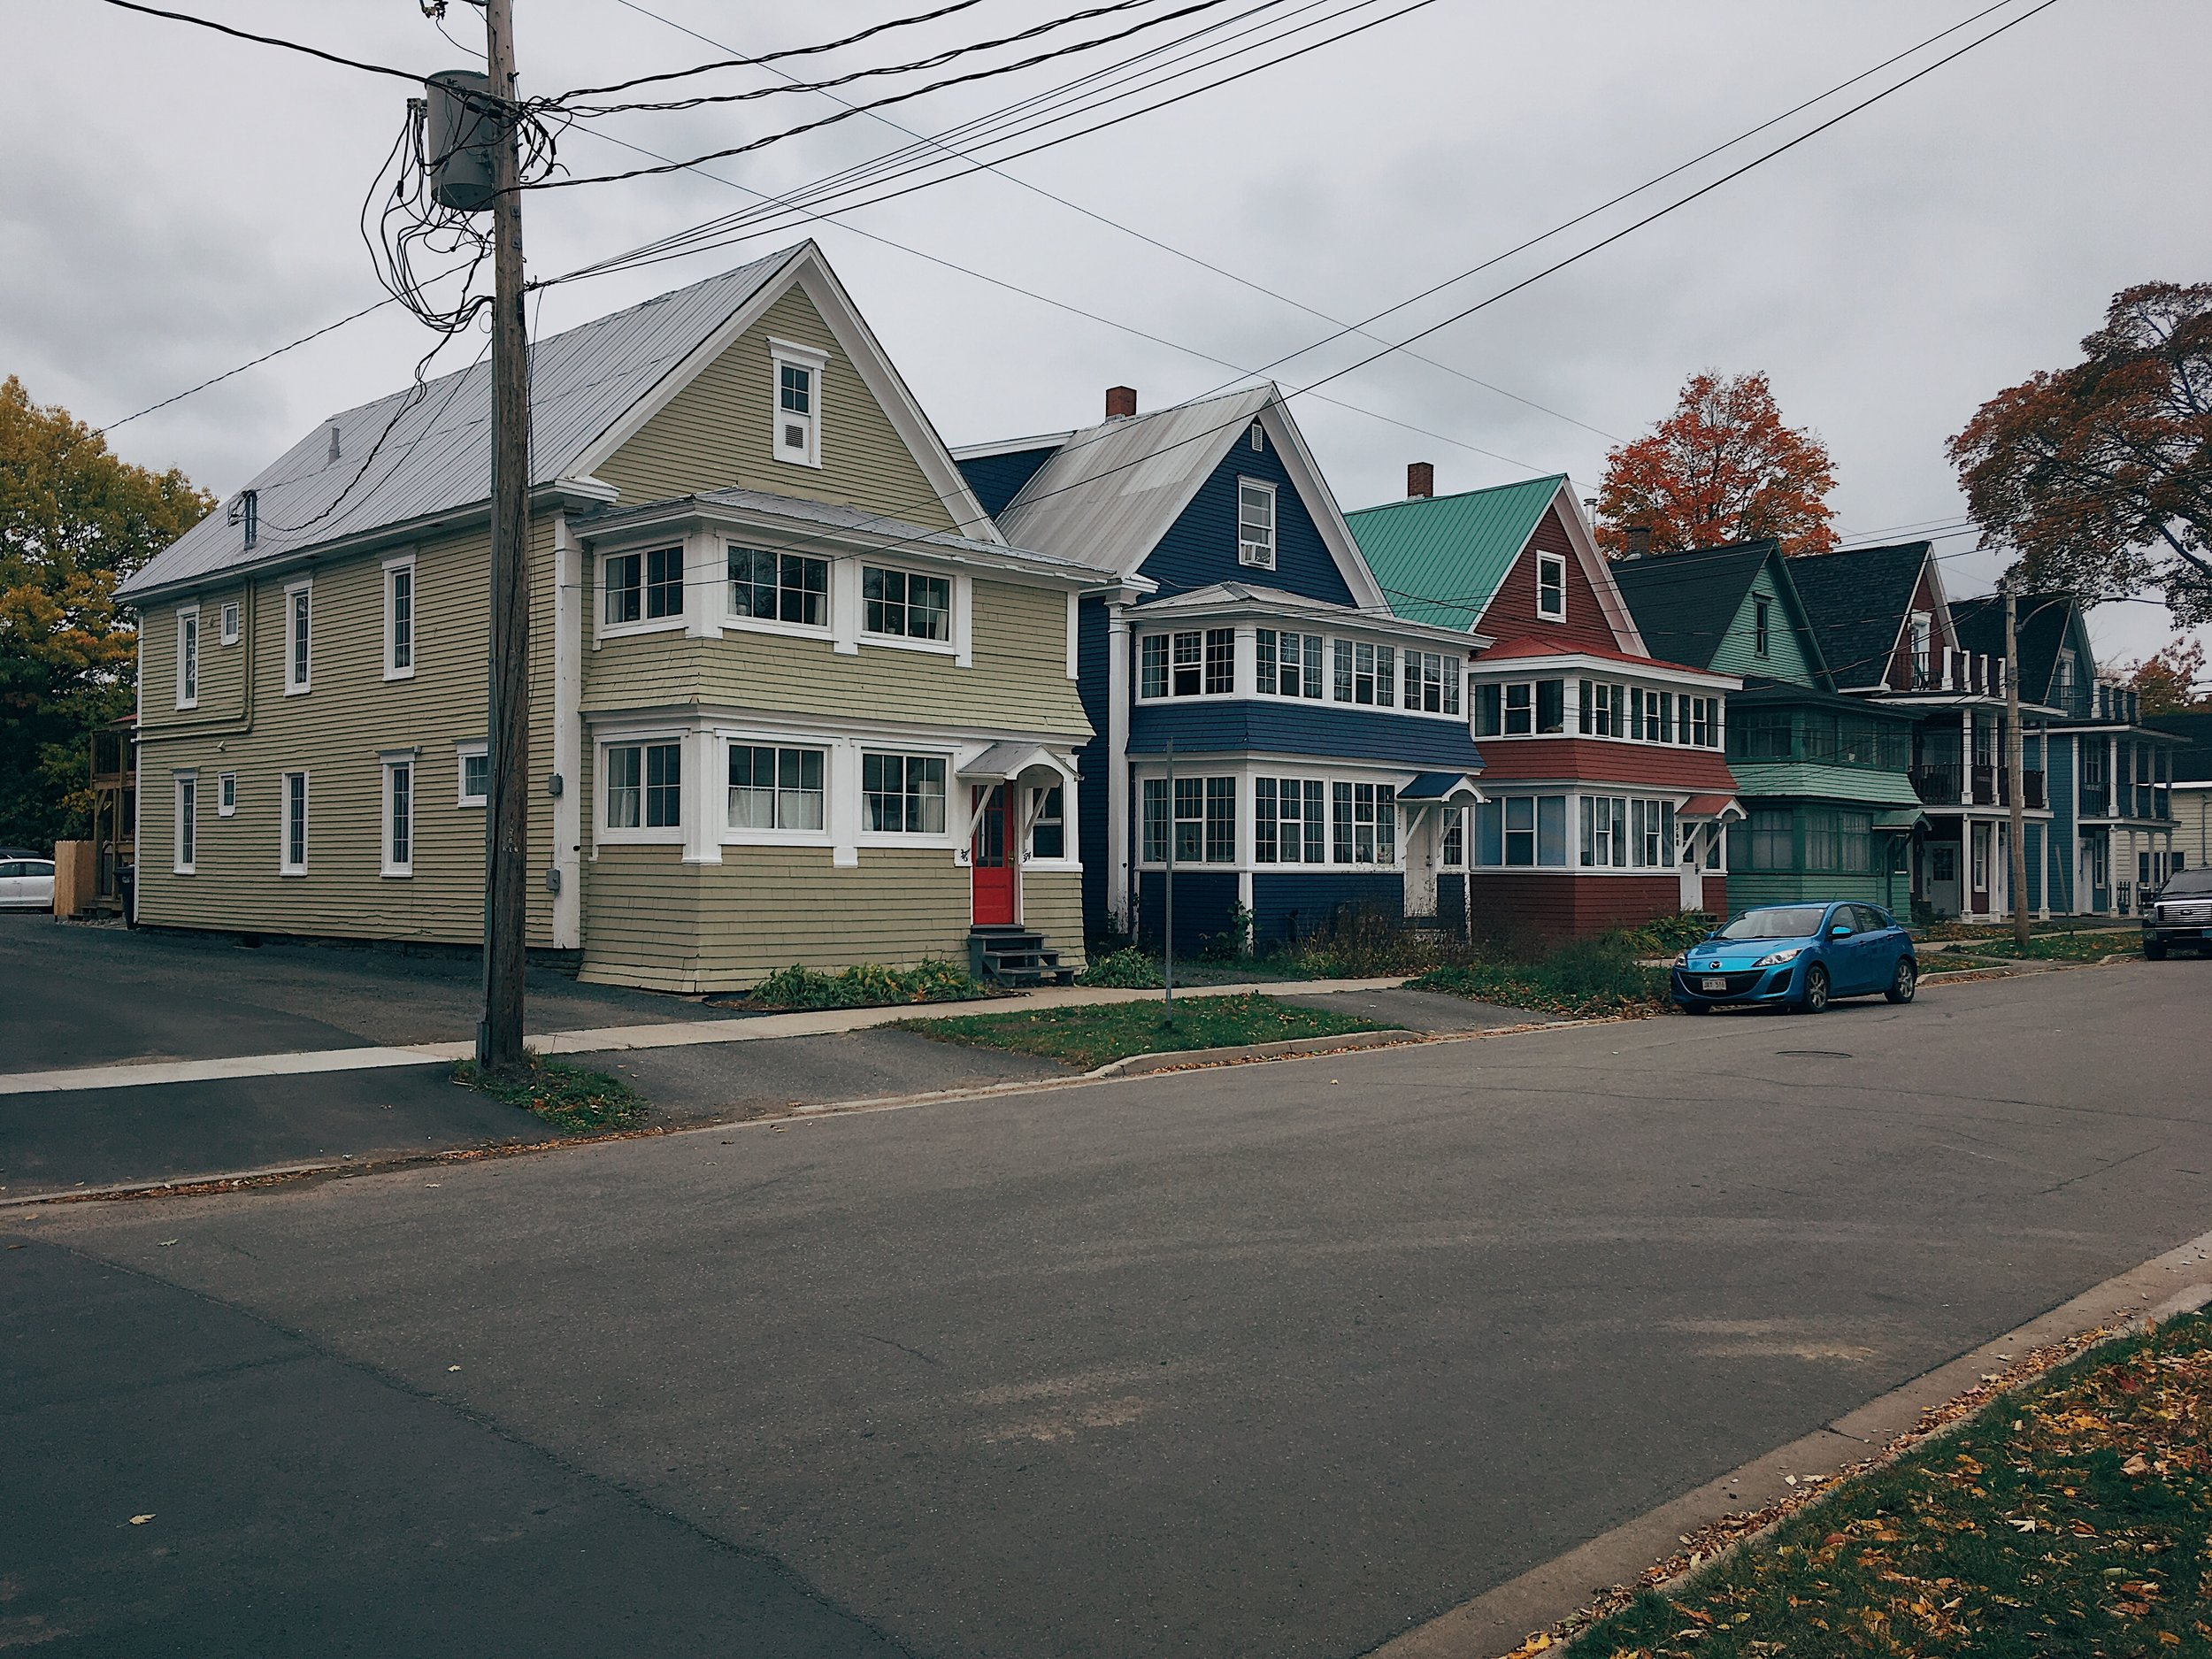 Neighbourhood Houses in the Rabbit Town area of Fredericton, New Brunswick.